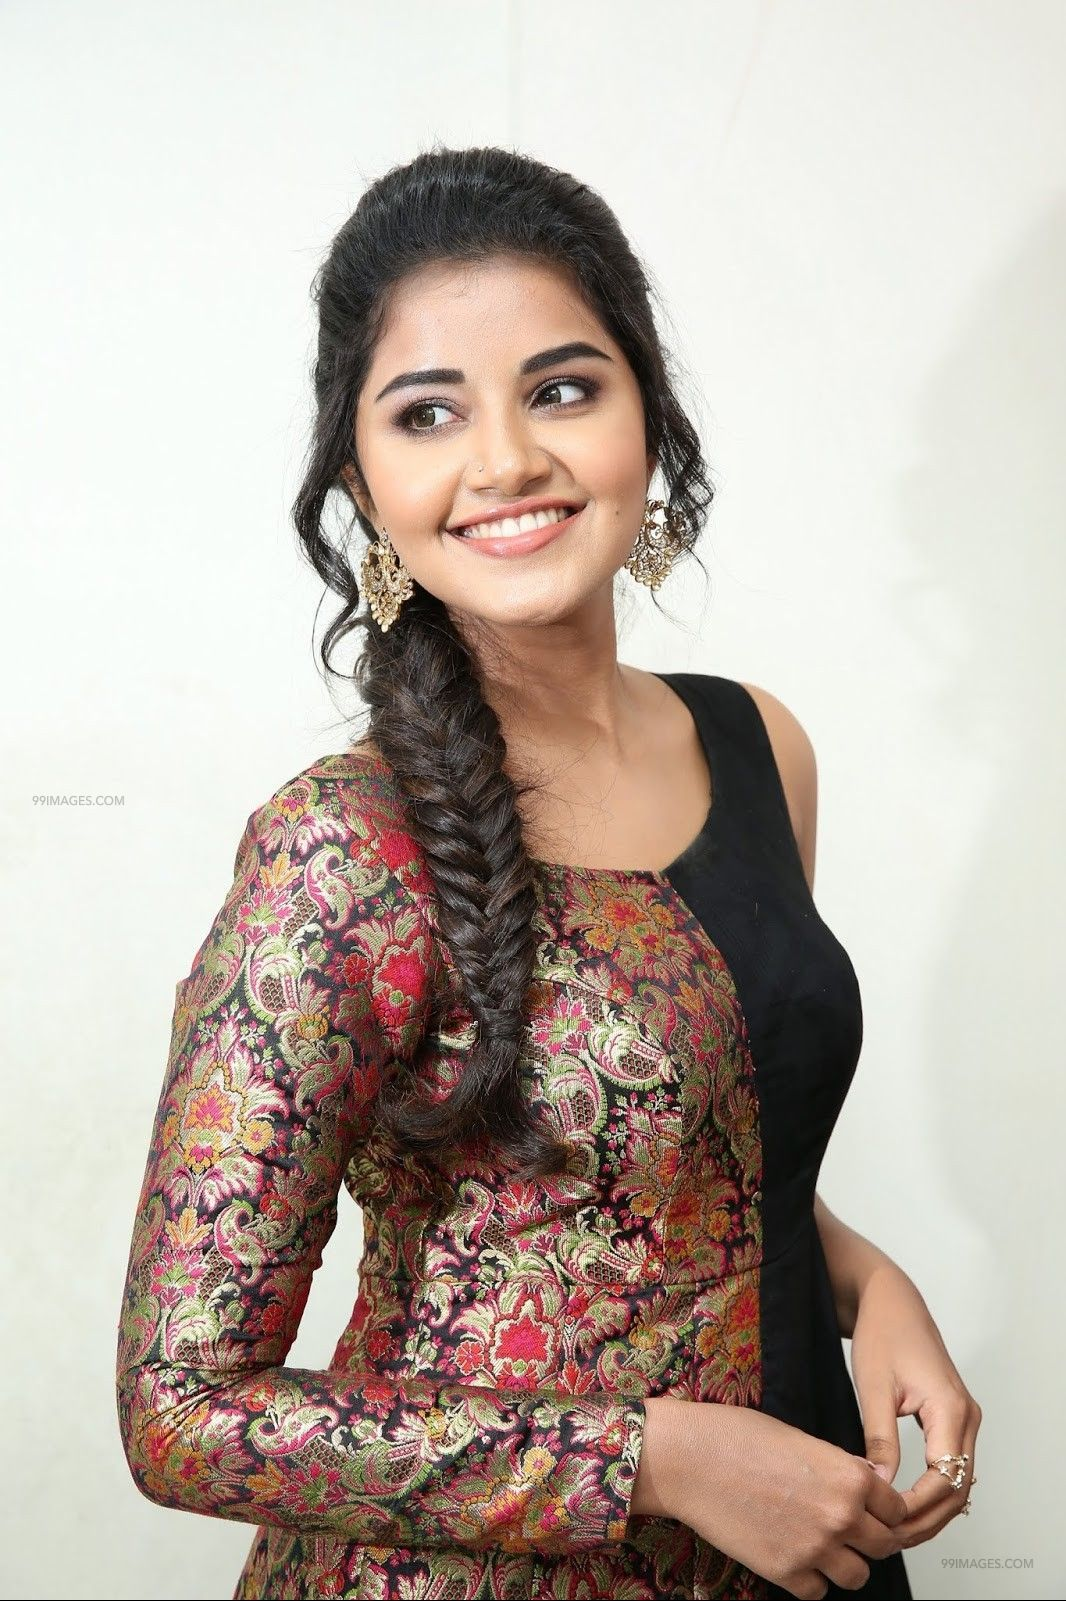 Anupama Parameswaran Hot HD Photos & Mobile Wallpapers, WhatsApp DP (1080p) (73410) - Anupama Parameswaran